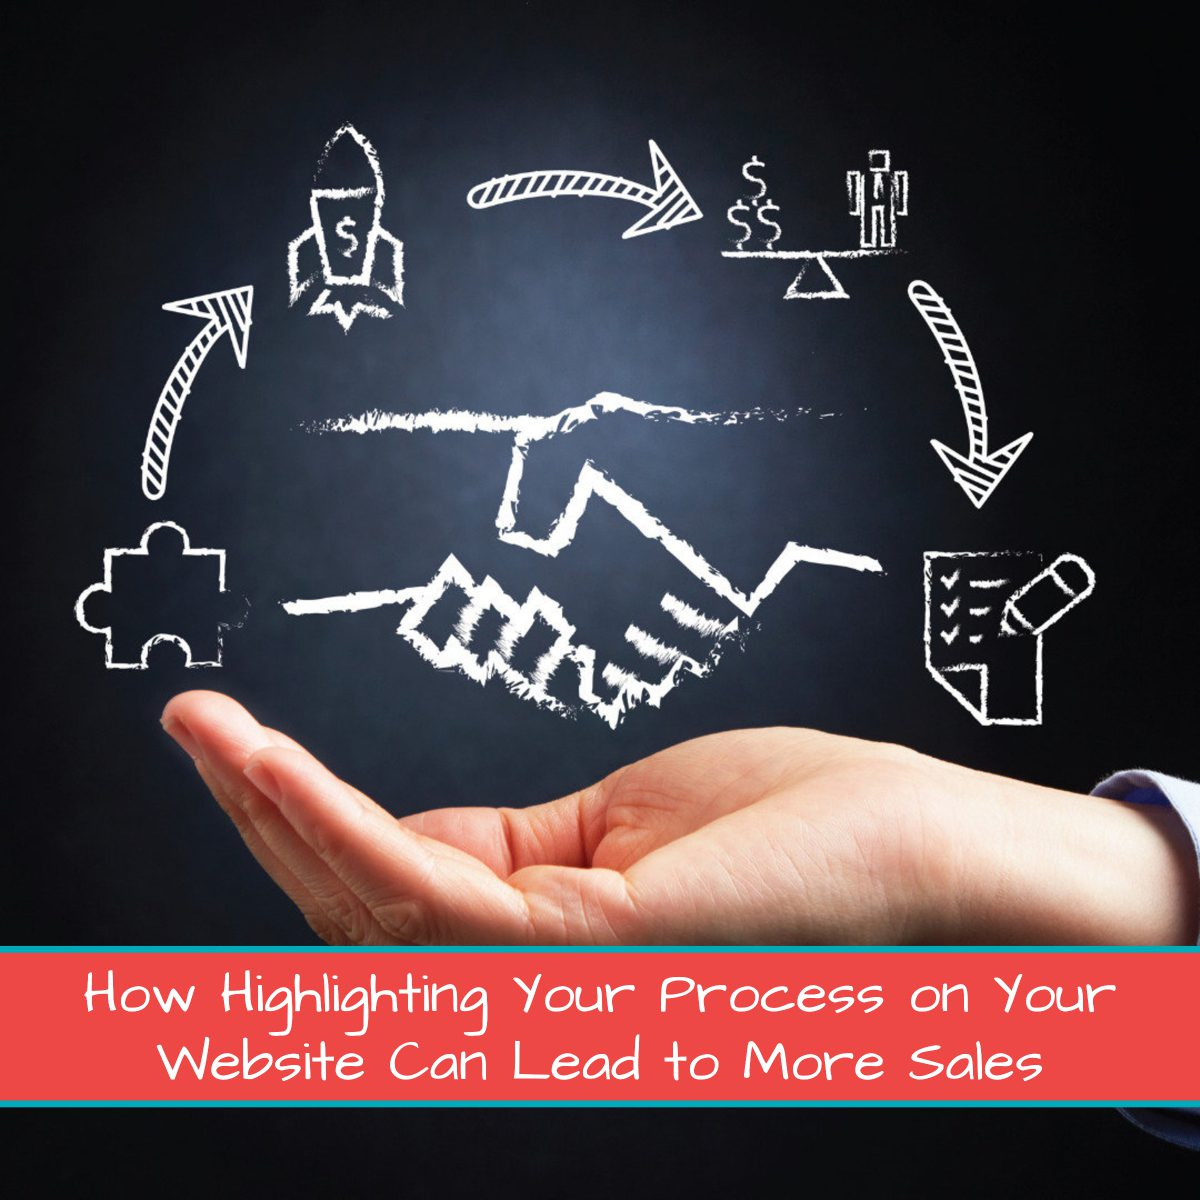 How Highlighting Your Process on Your Website Can Lead to More Sales 1200 x 1200